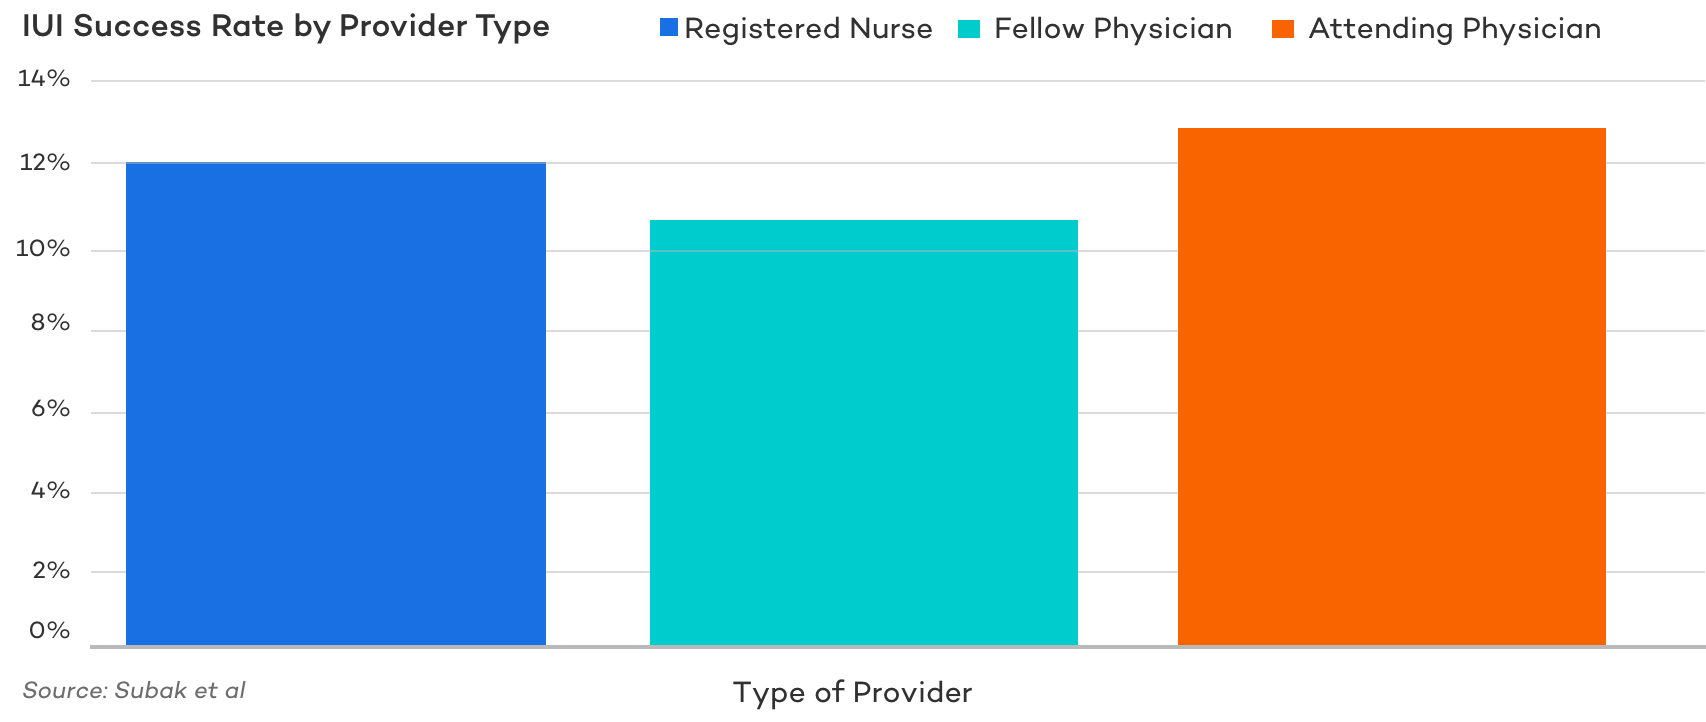 IUI Success Rate by Provider Type